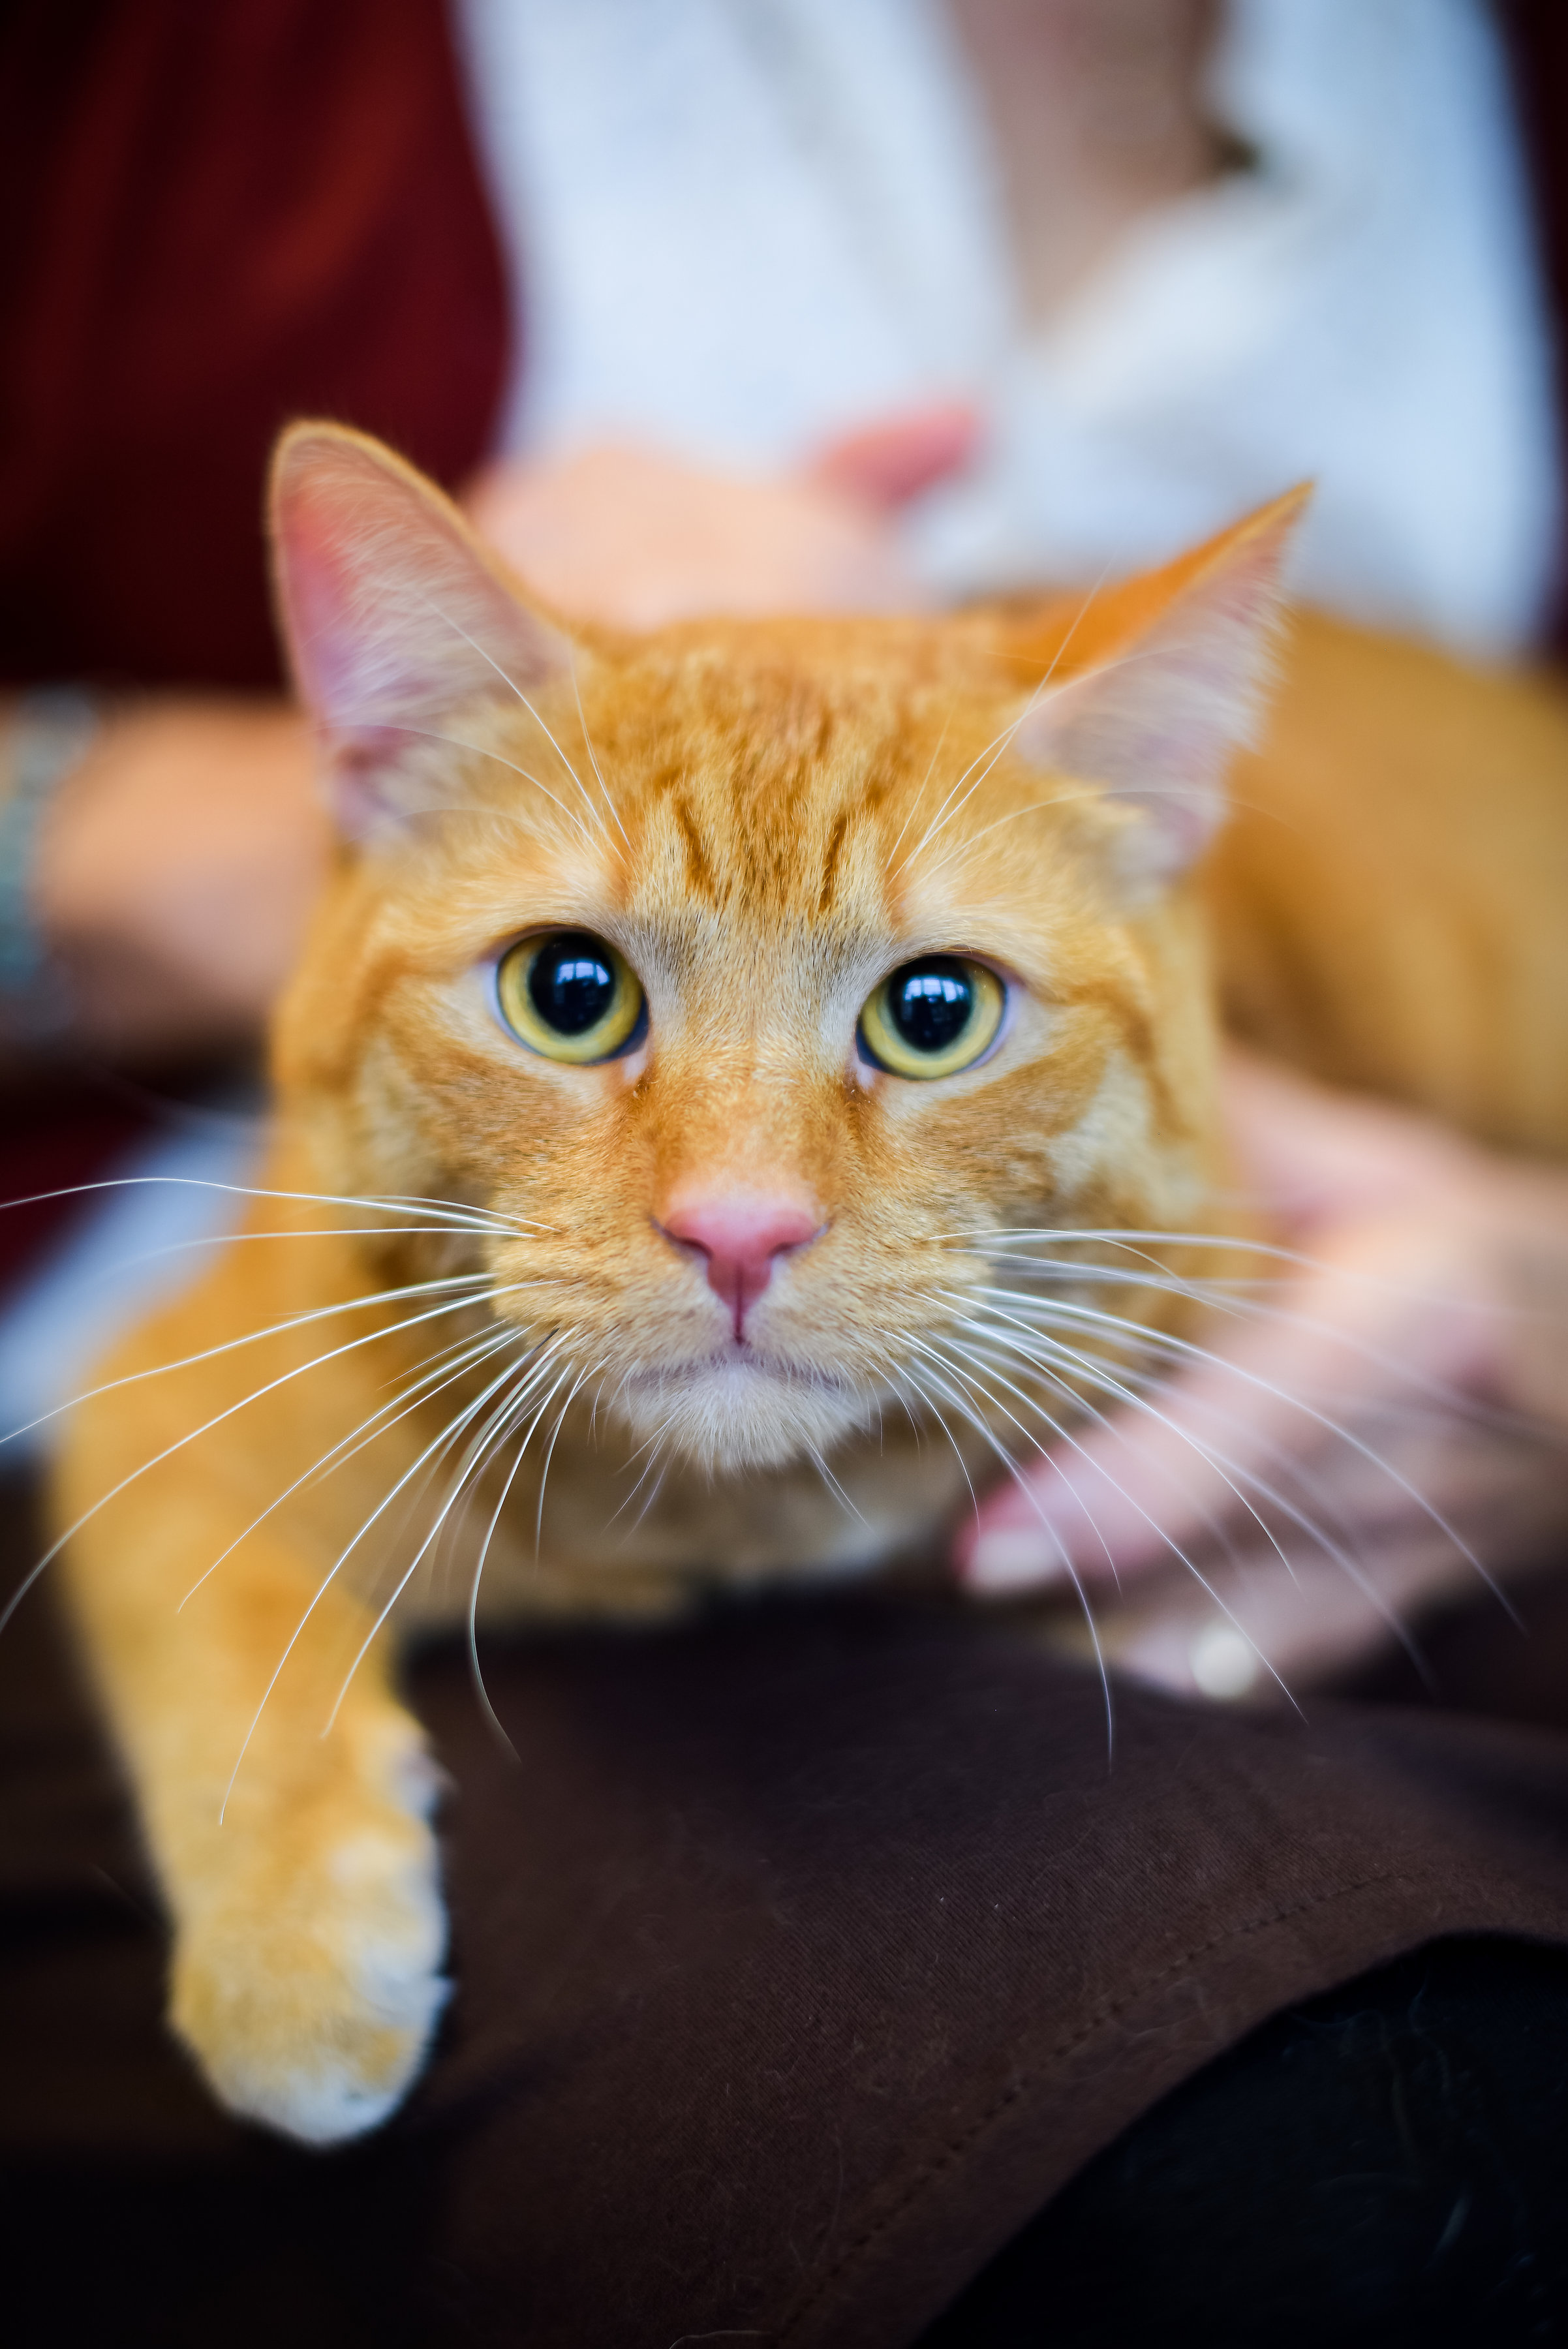 An orange cat with great white whiskers looks at the camera.